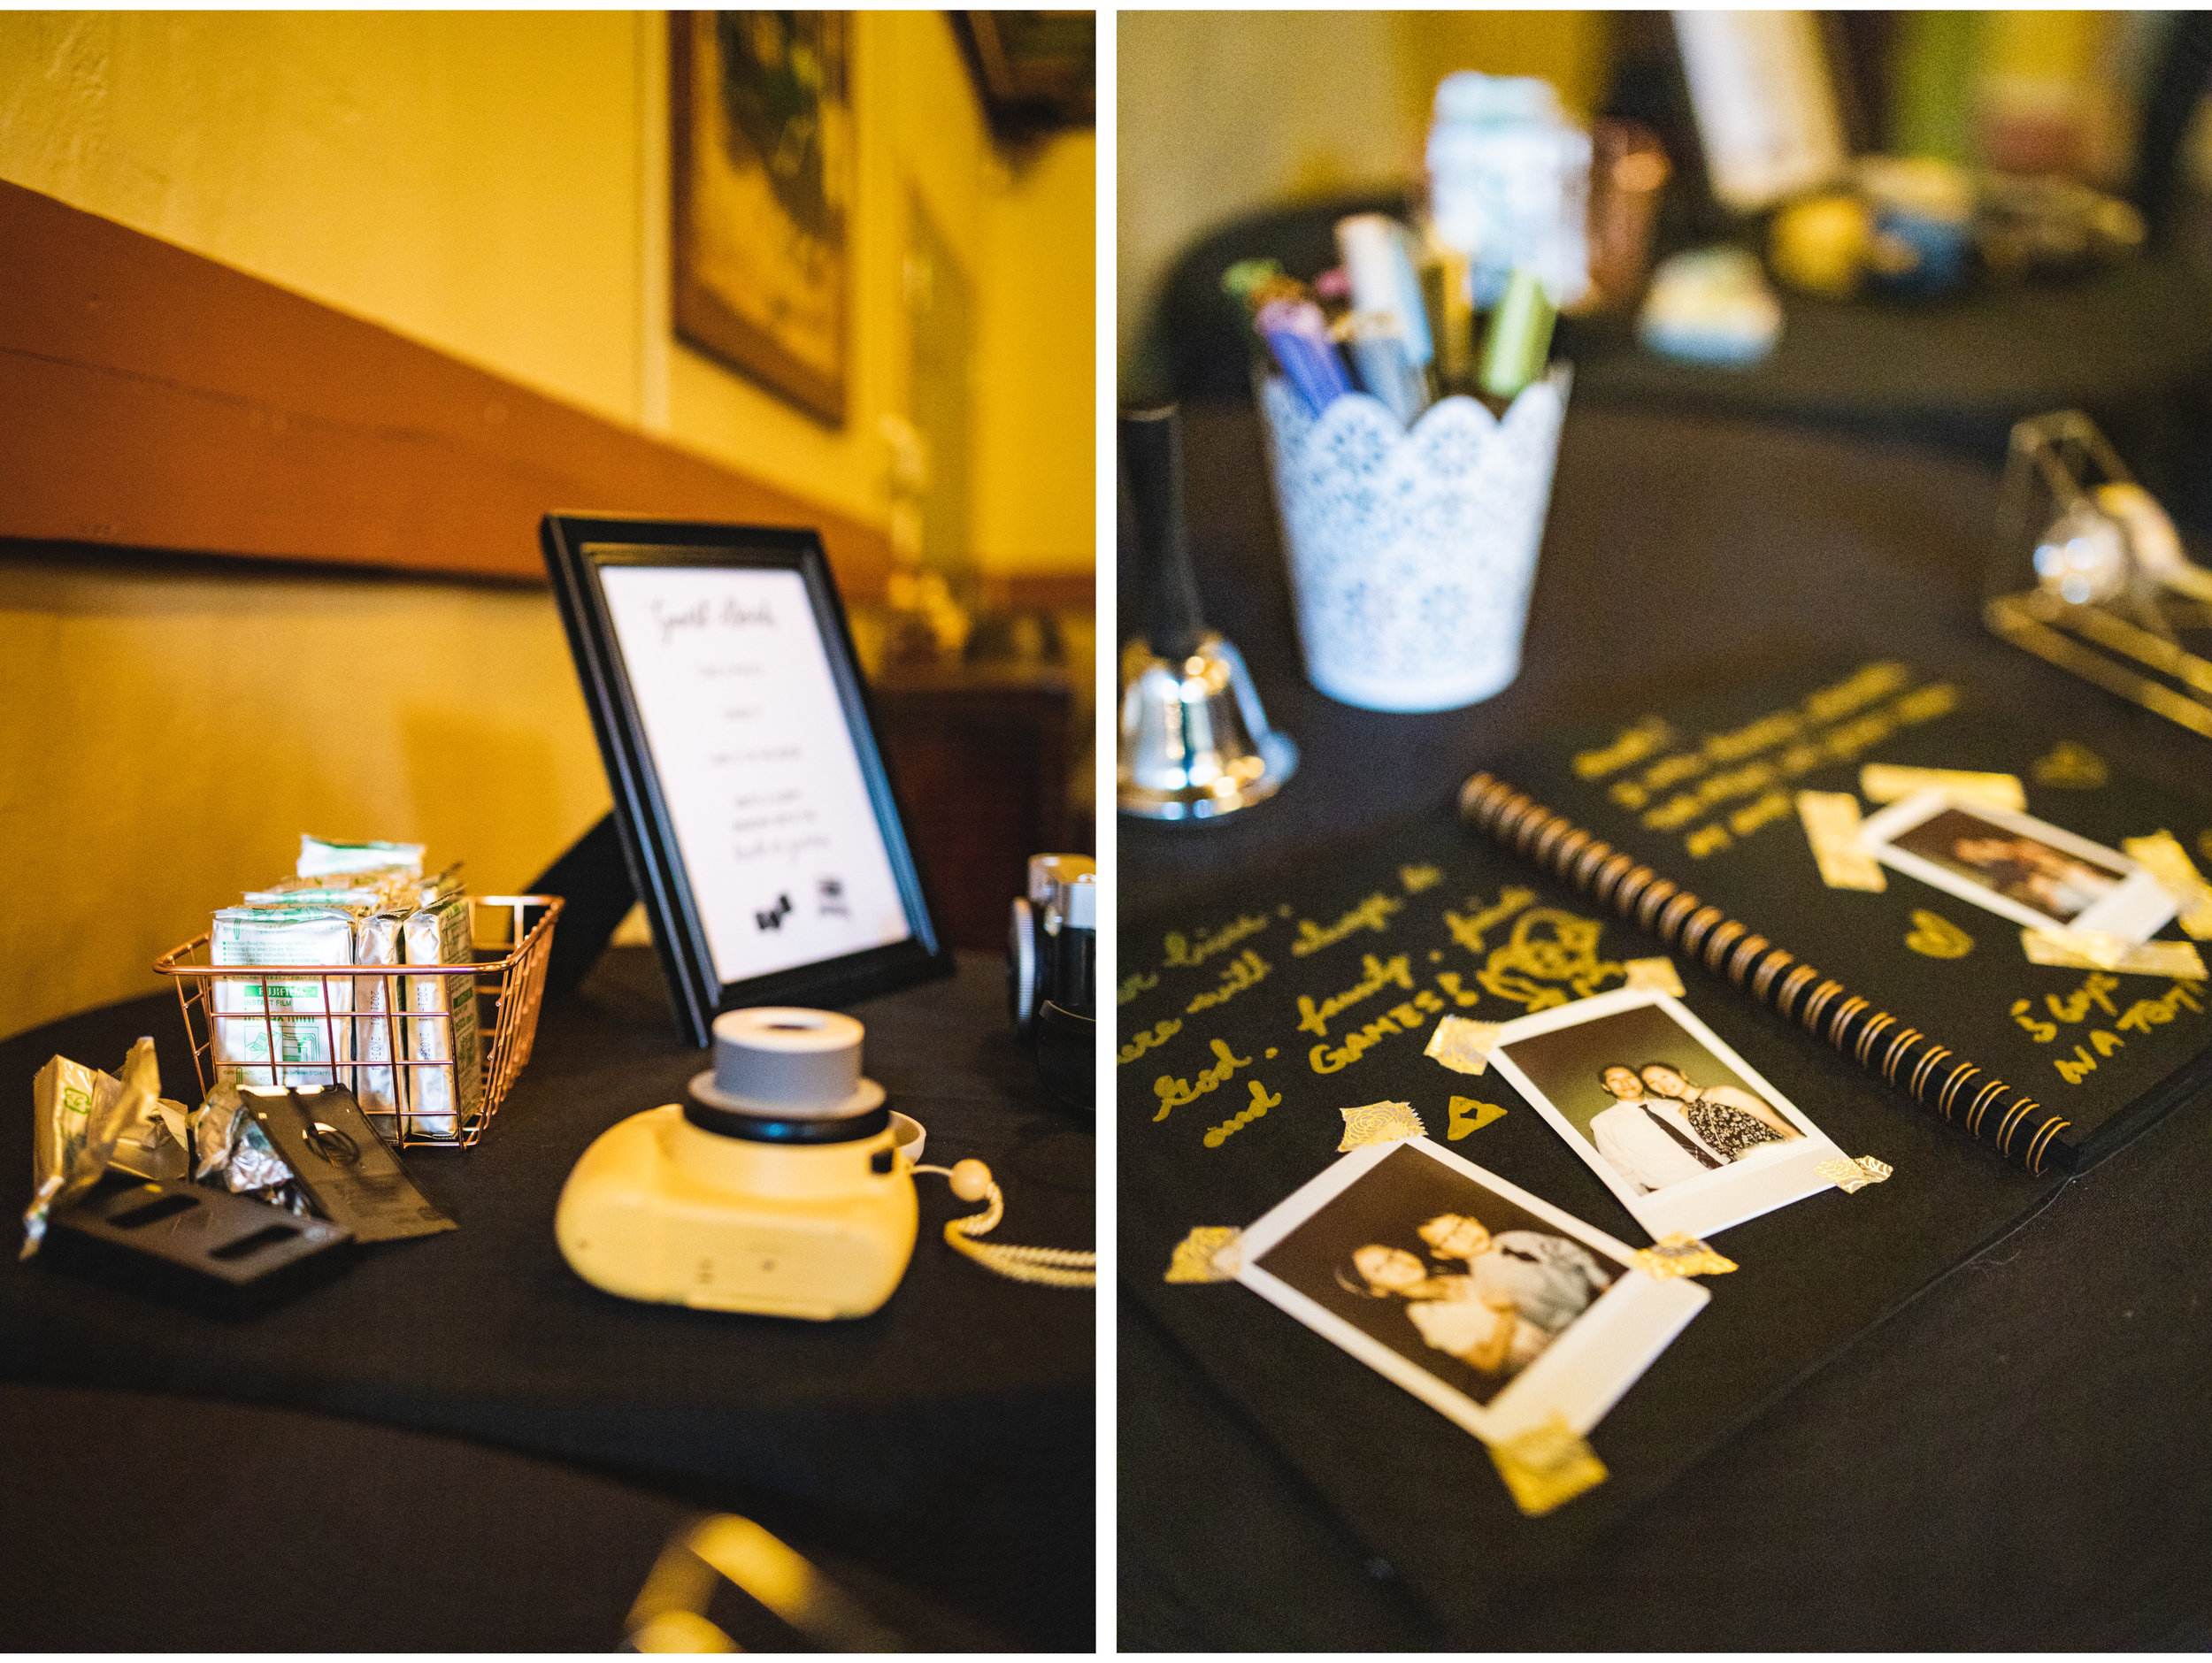 Instax Film Wedding Activity.jpg